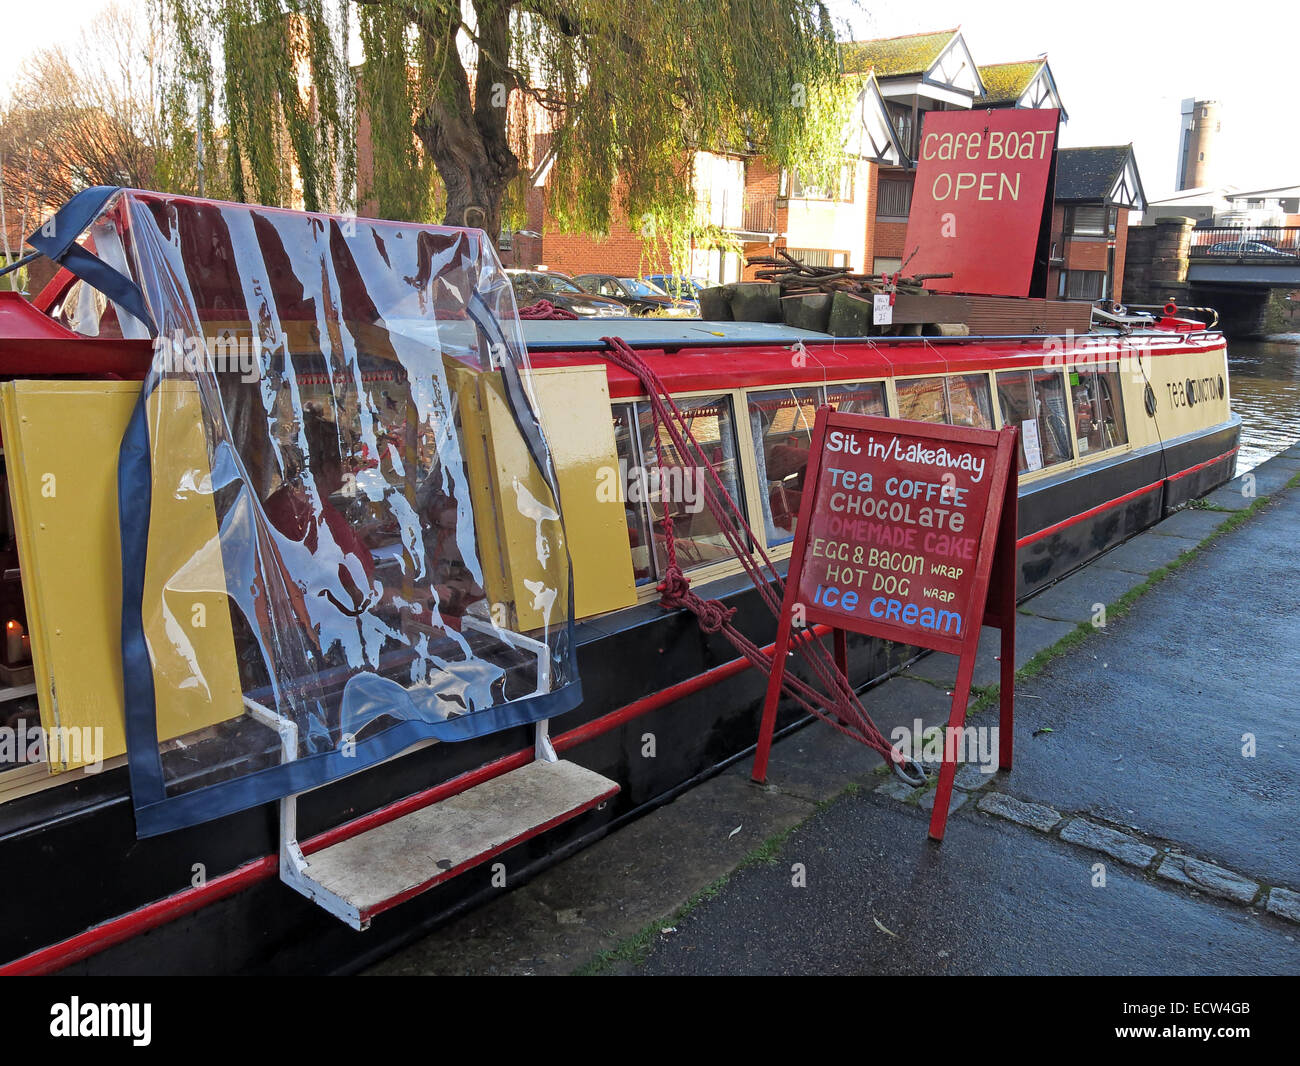 Canal Cafe Narrowboat, Chester,Cheshire,England,UK - Stock Image